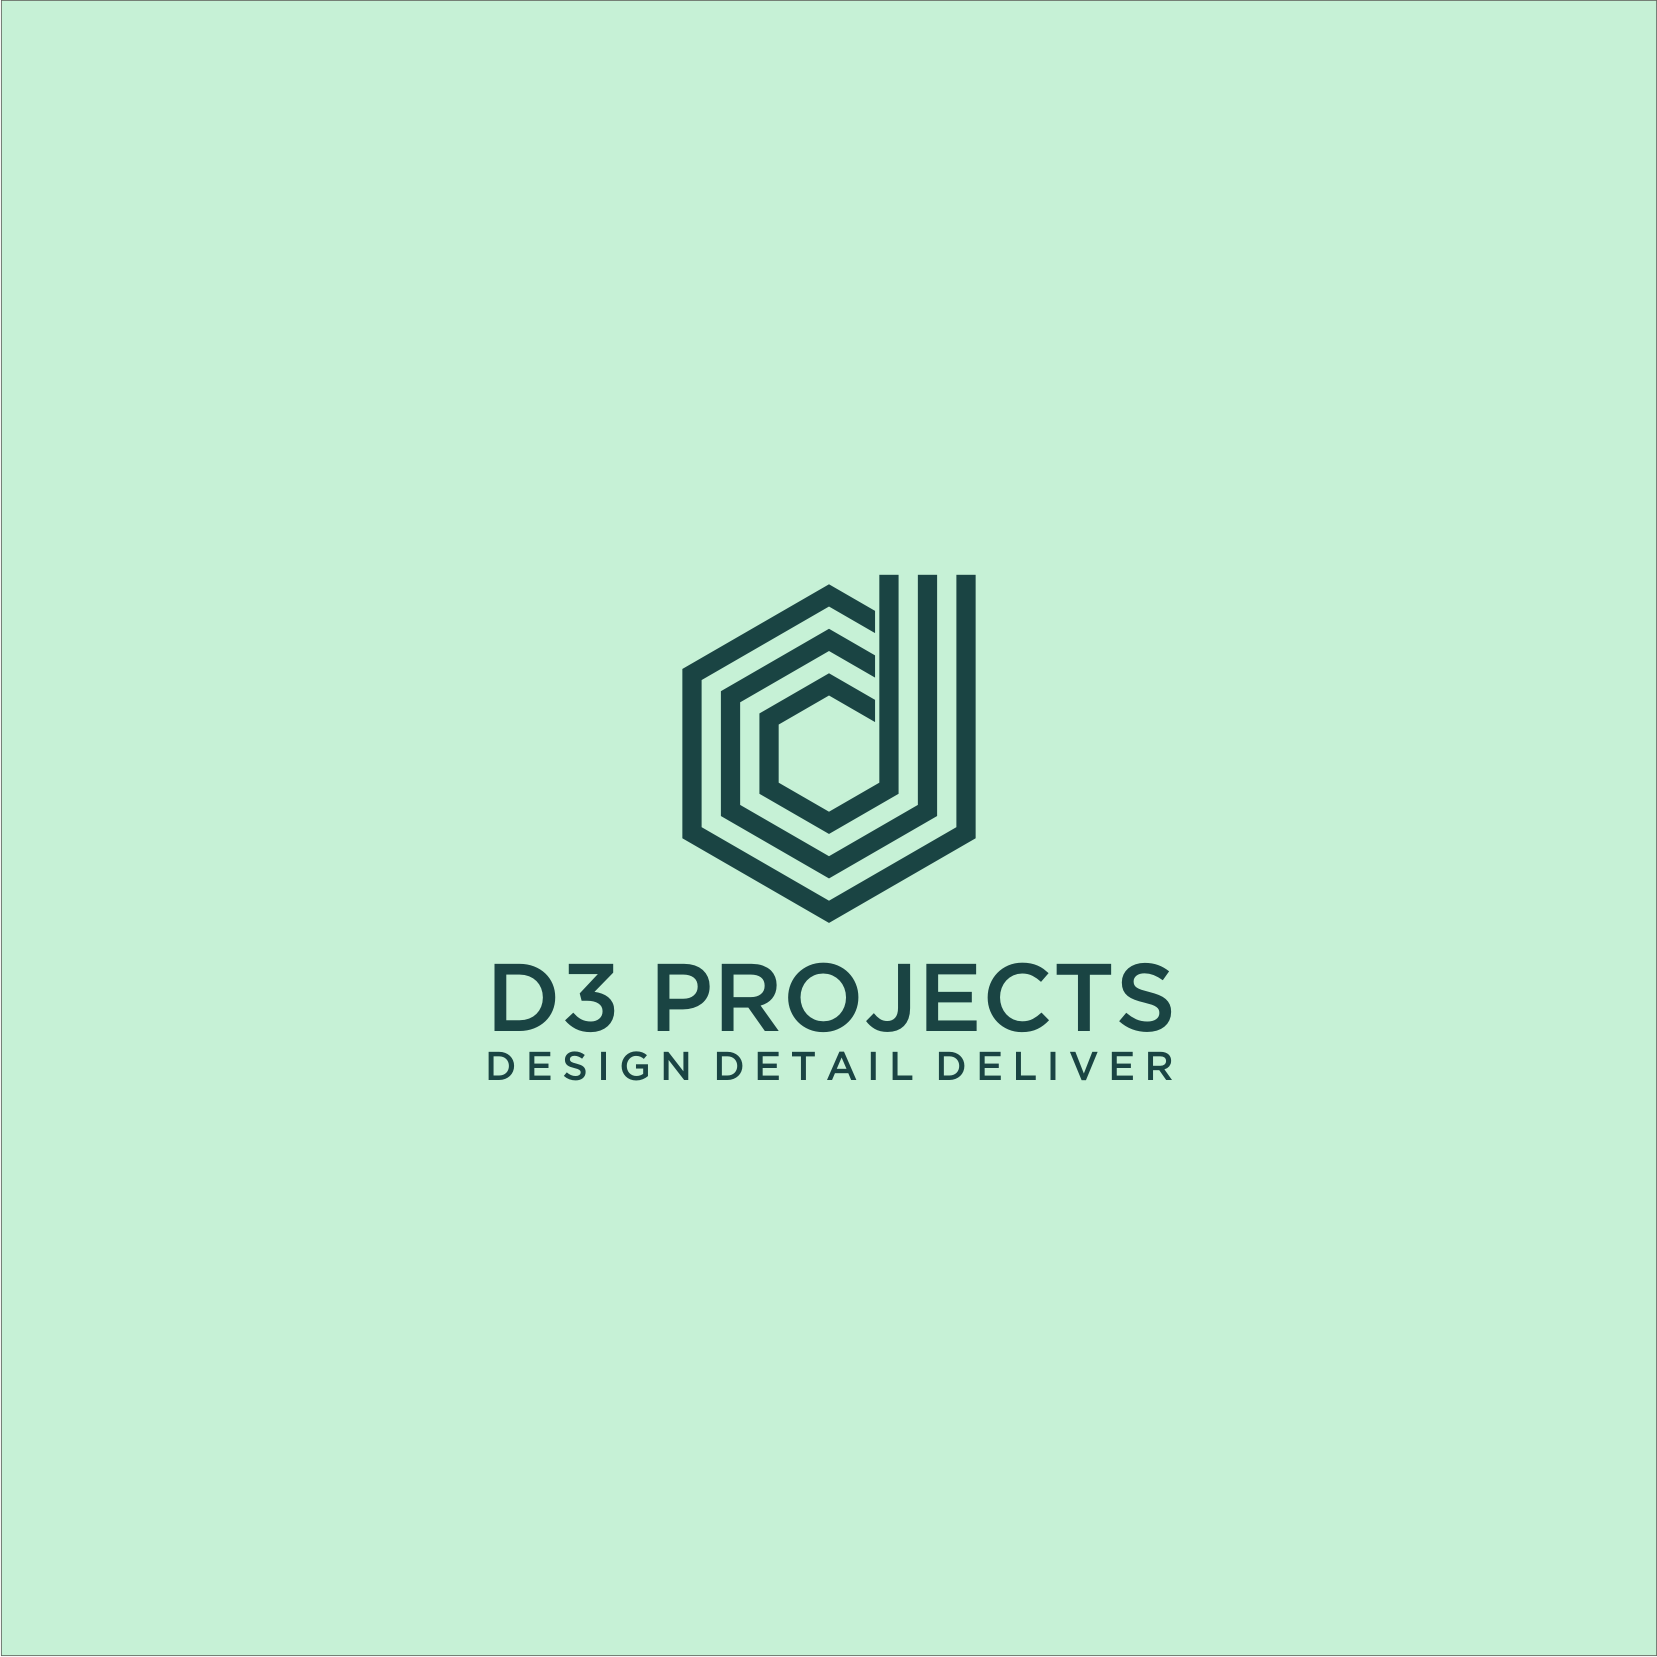 Professional Masculine Interior Design Logo Design For D3 Projects Company Name Design Detail Deliver Is Our Slogan By Ikha Asrhy Design 24058156